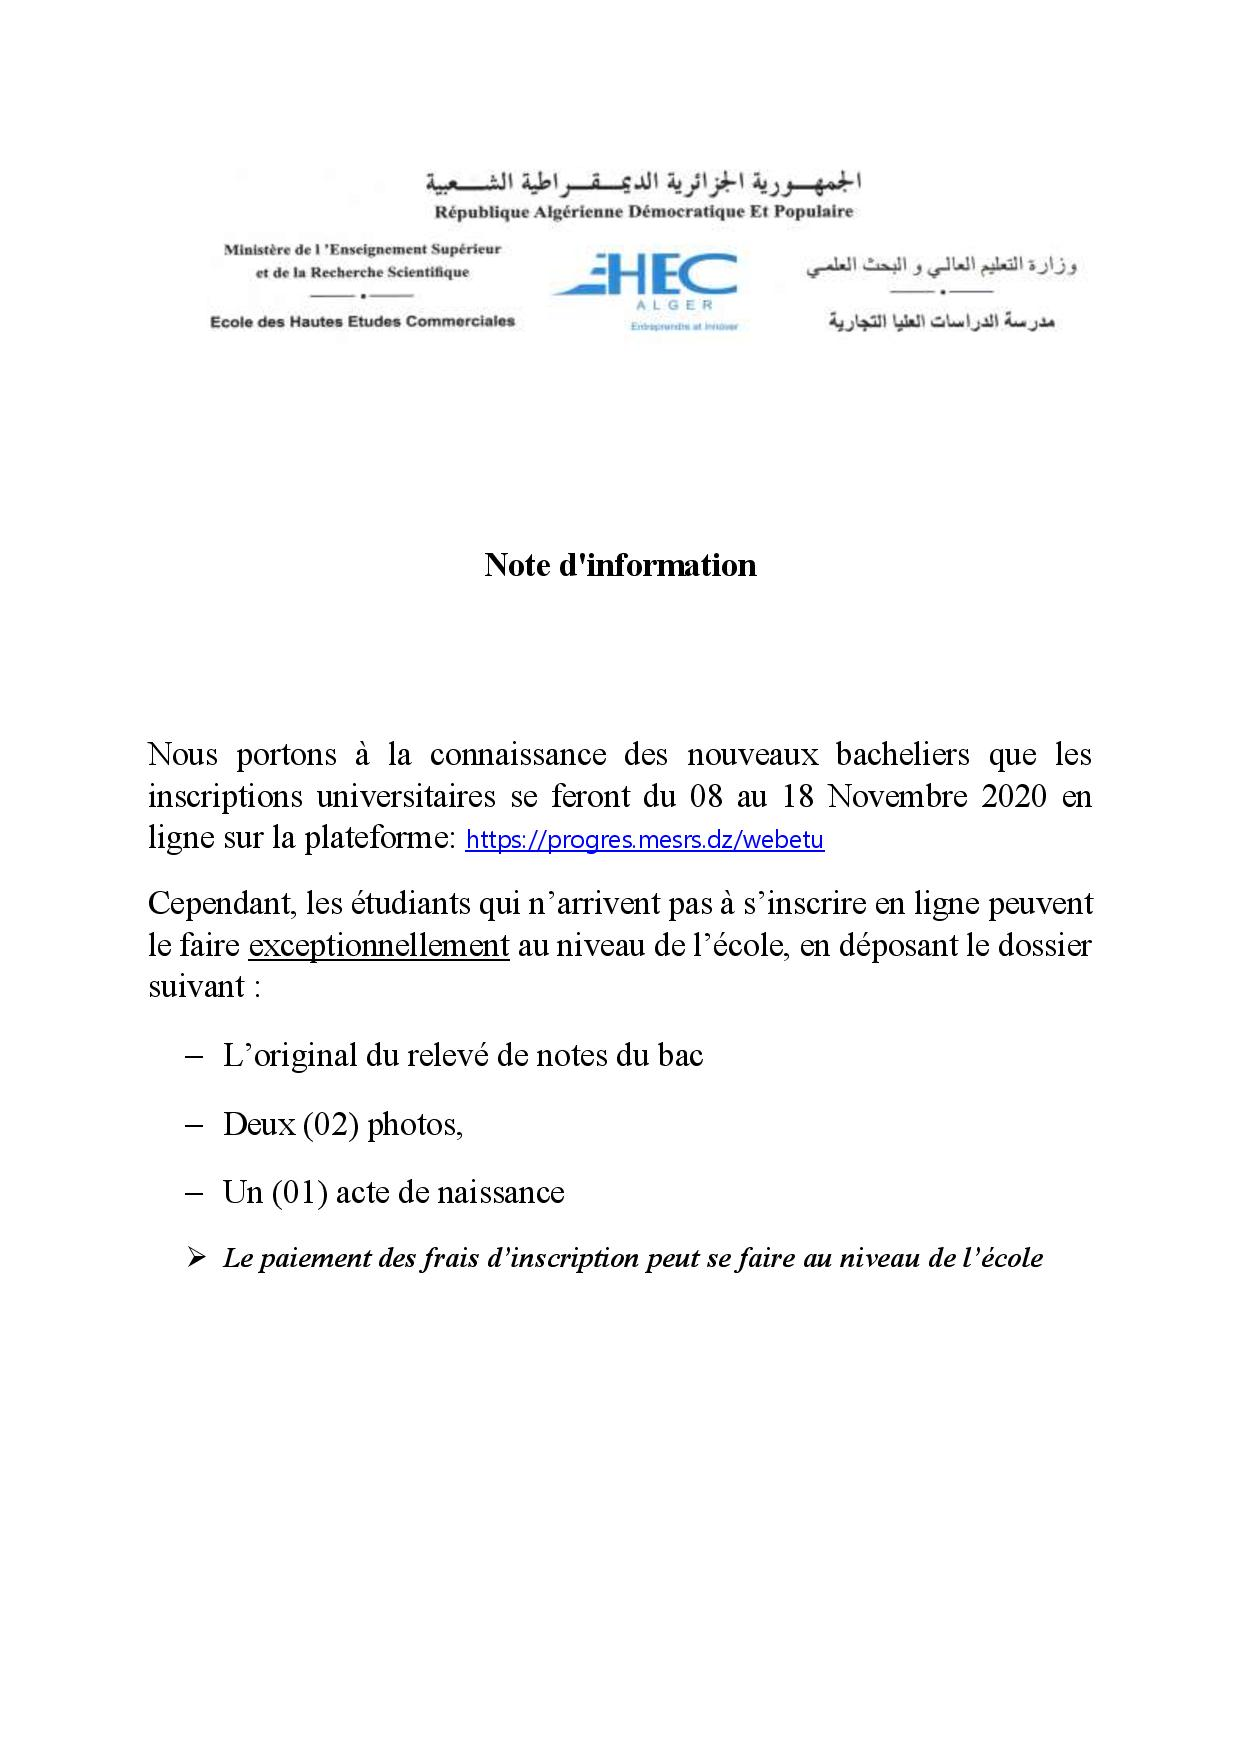 Note concerning the registrations of new baccalauréat holders